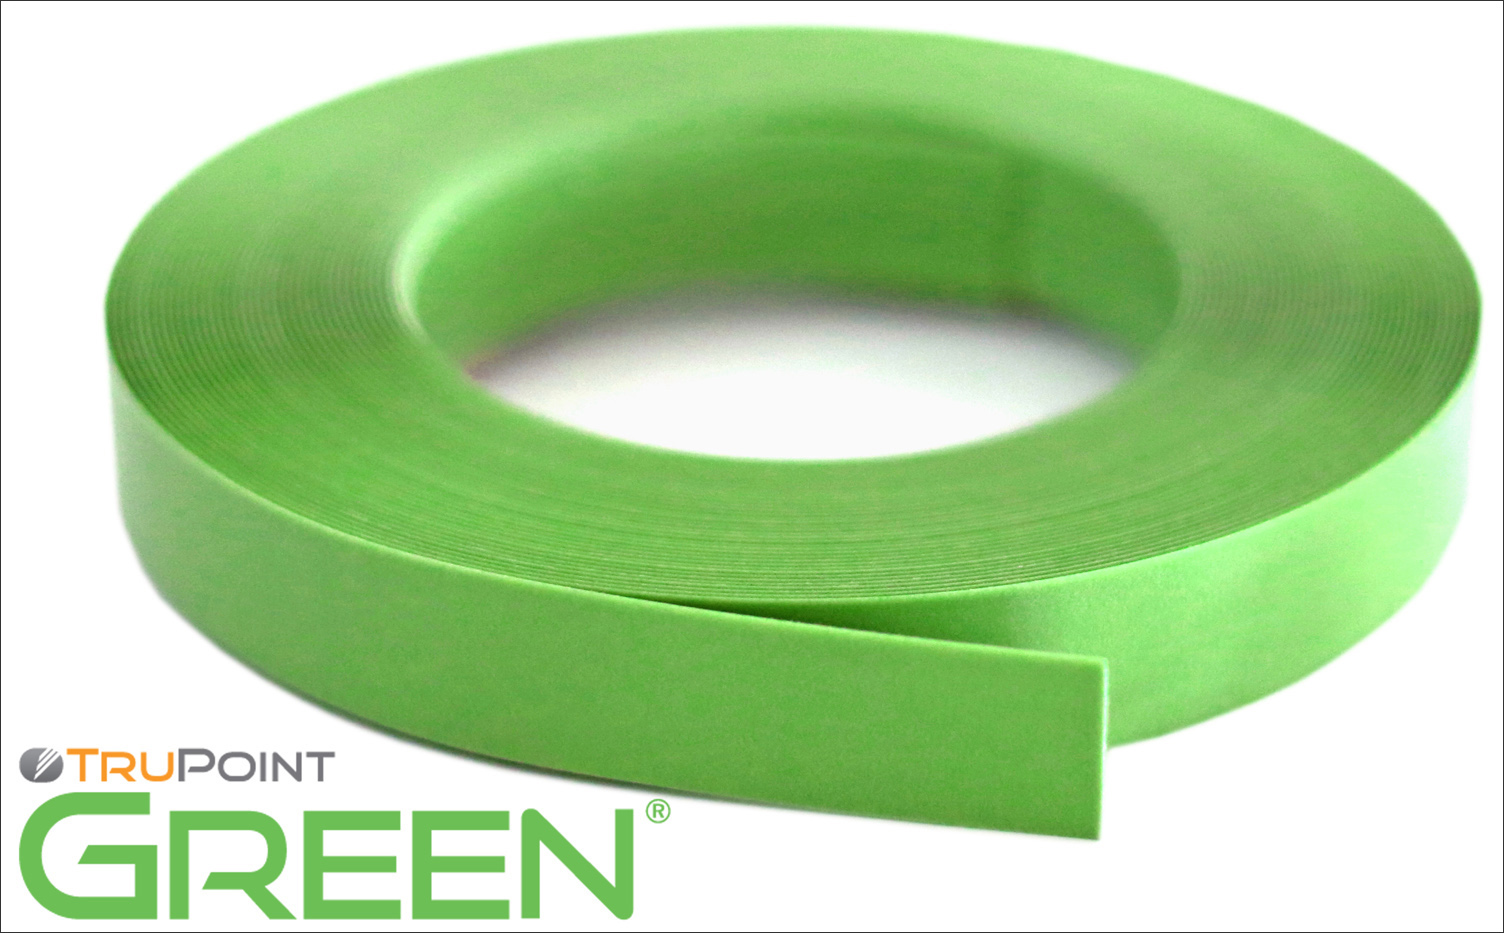 flexo concepts, plastic doctor blade, Green_Coil